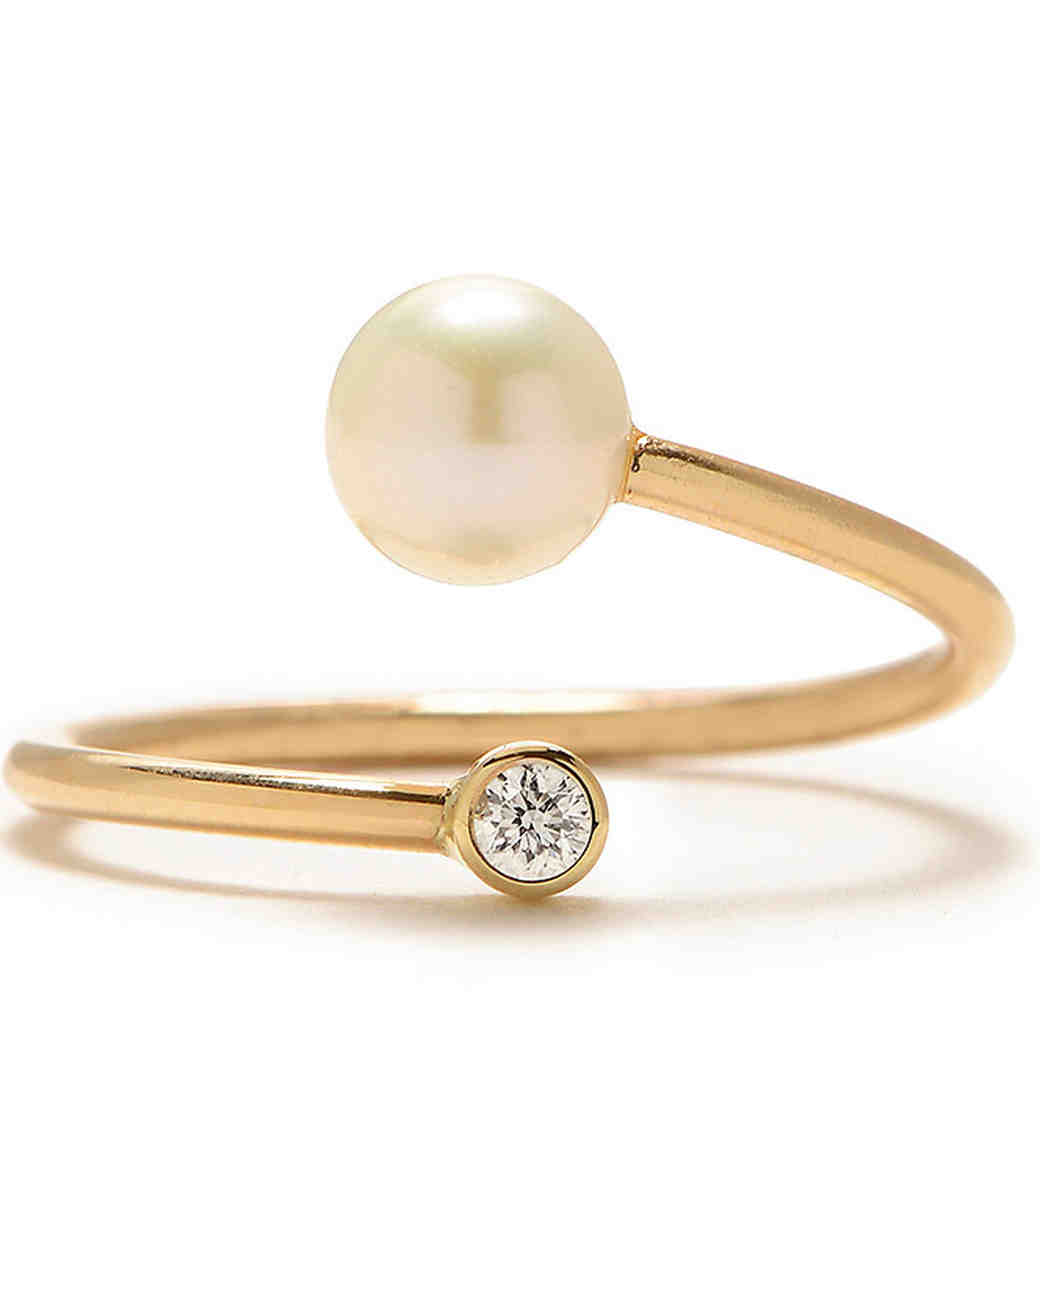 rings ring engagement pearl romantic diamond nouveau art